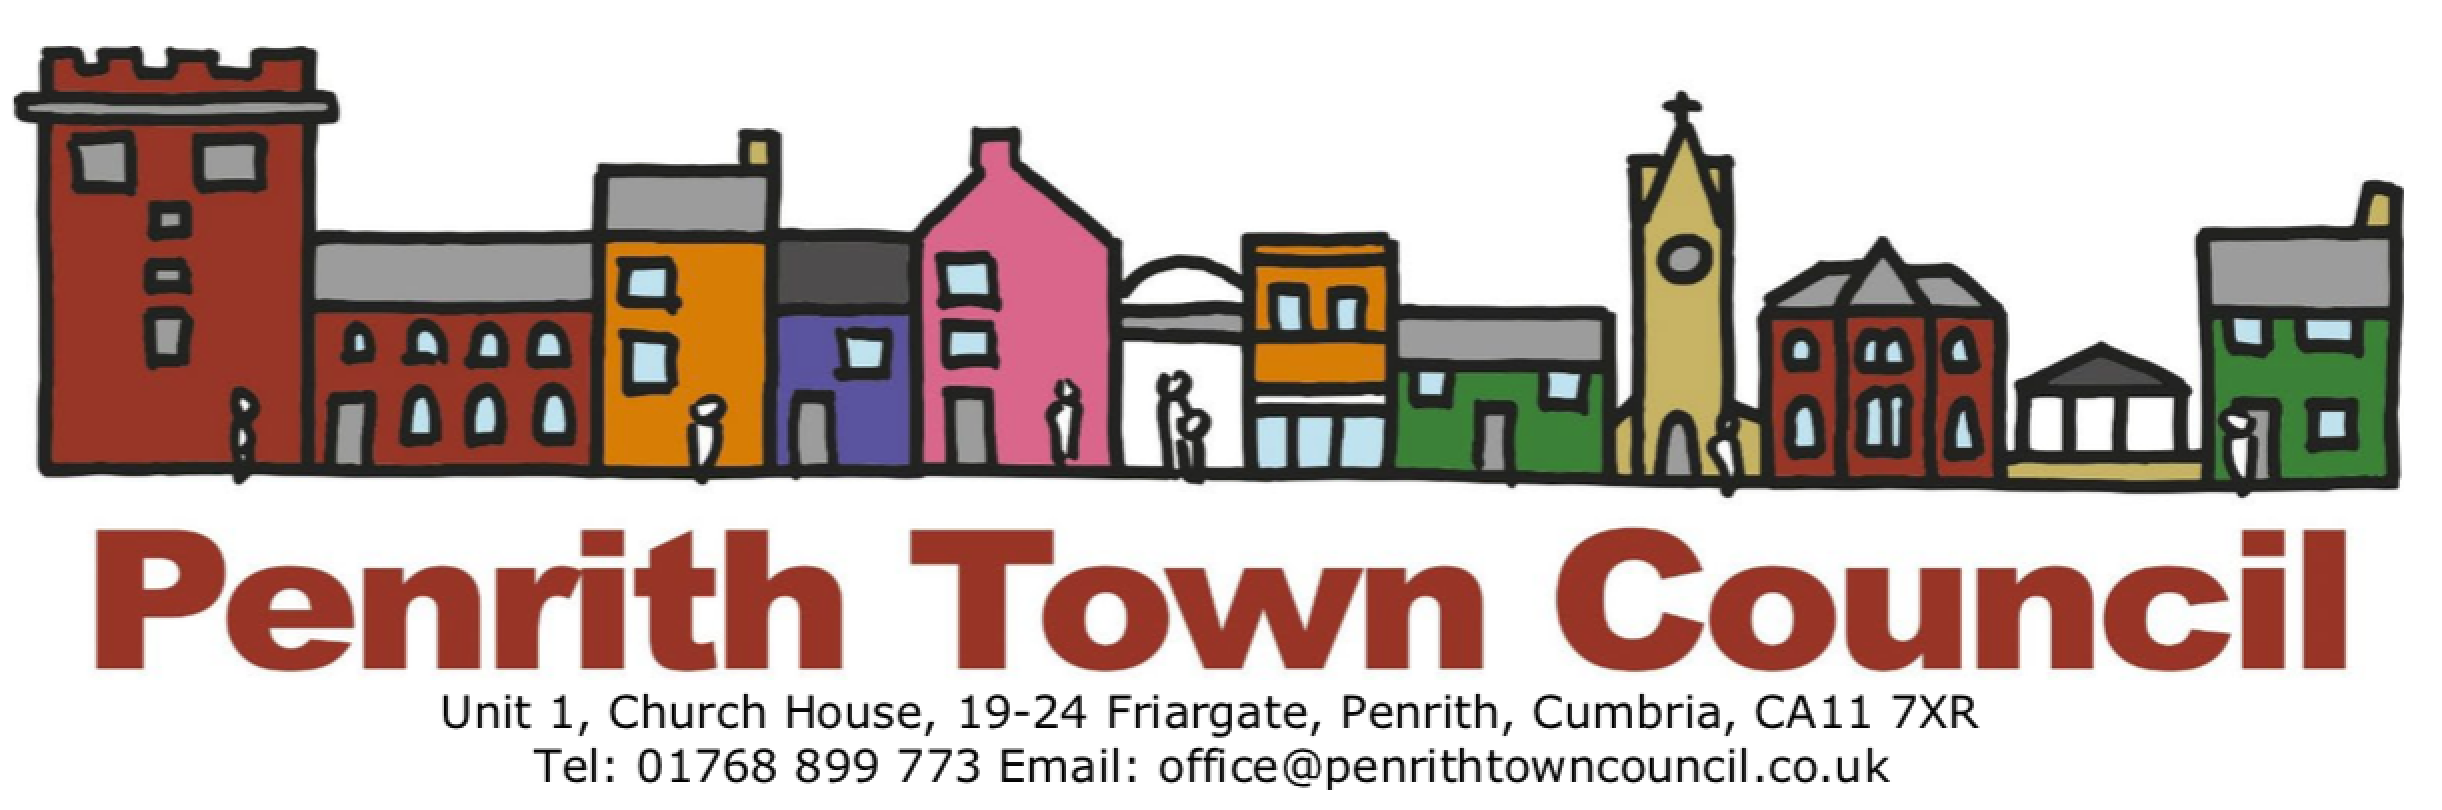 Penrith Town Council